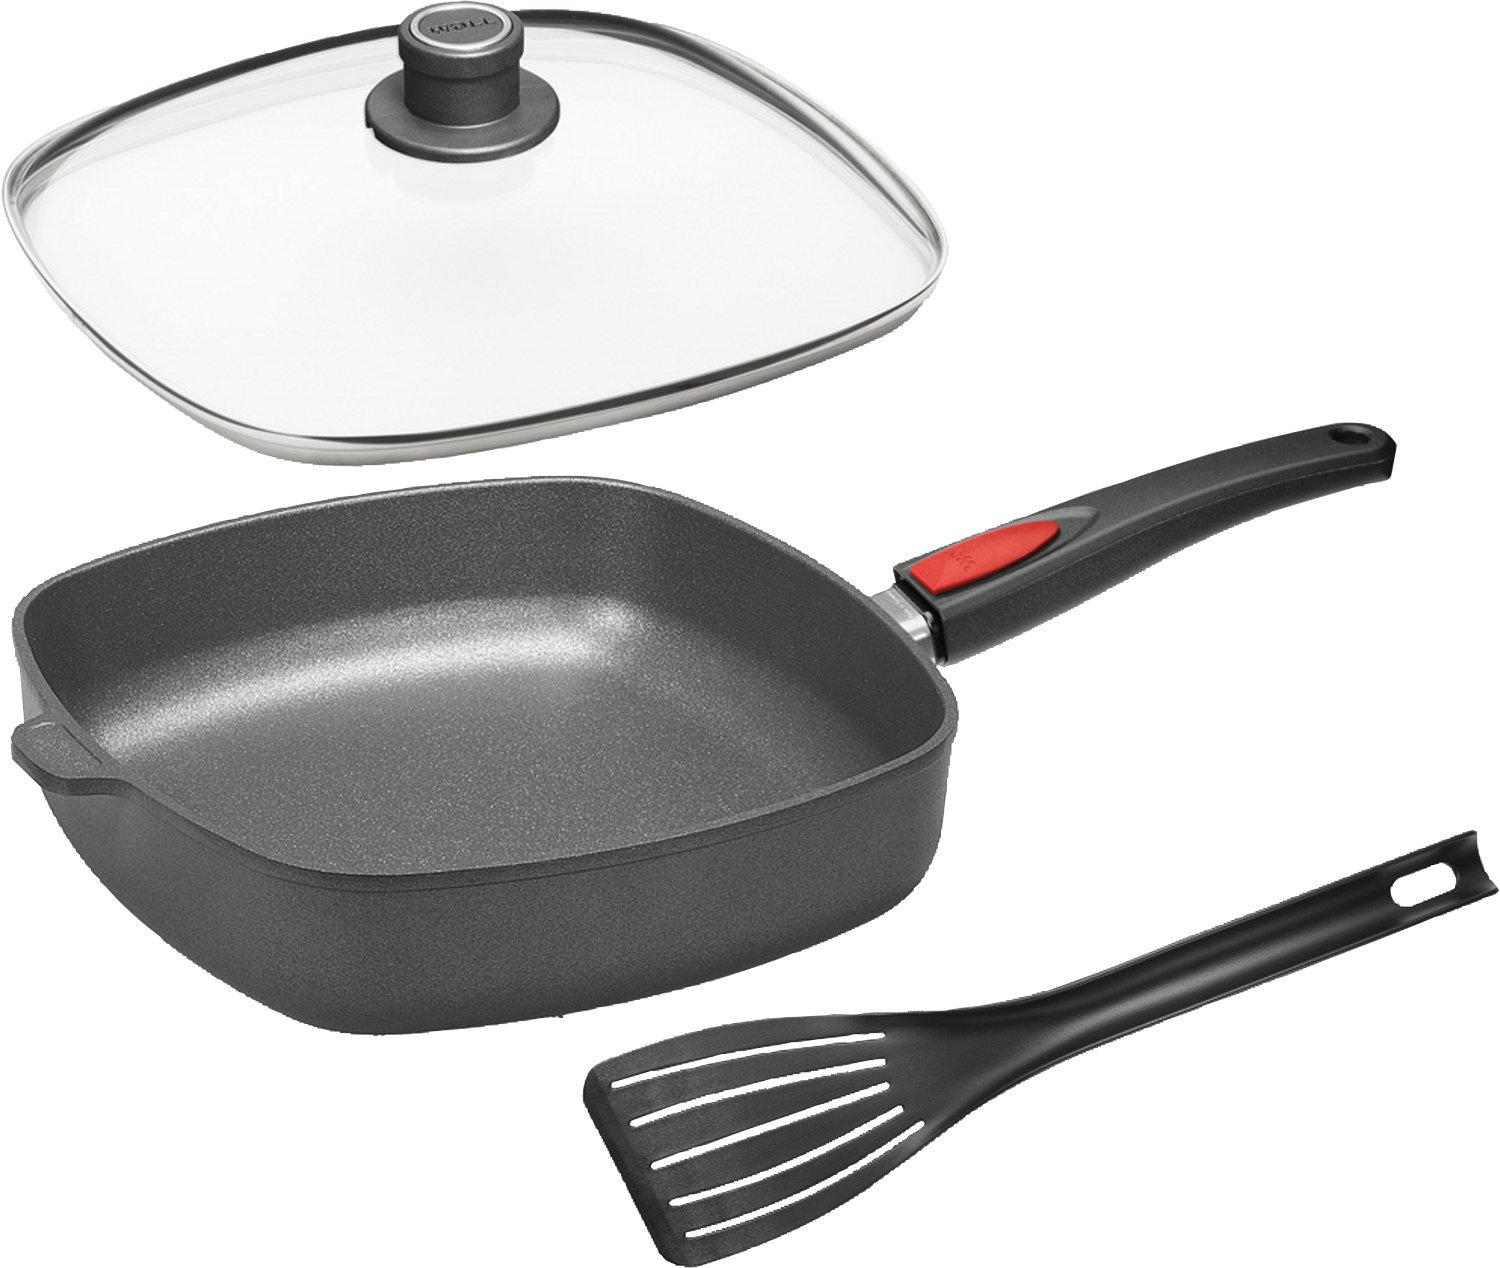 Woll frying pan set 3 parts size 26 x 26 cm